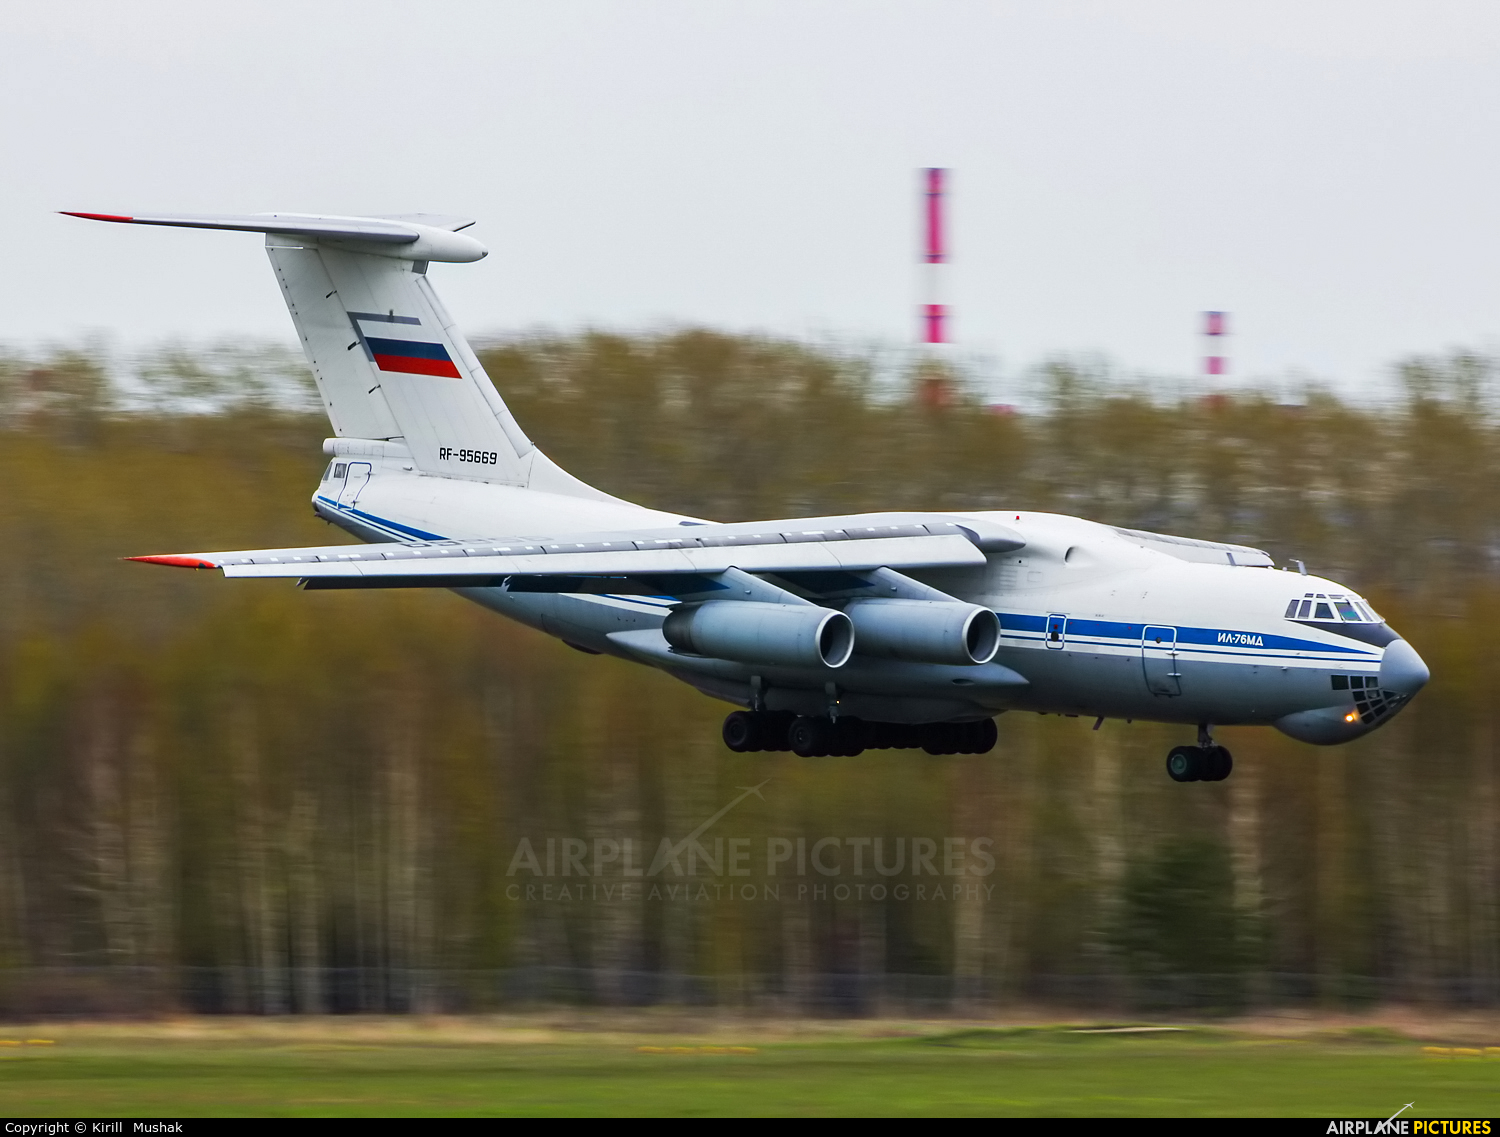 Russia - Air Force RF-95669 aircraft at Bolshoe Savino - Perm